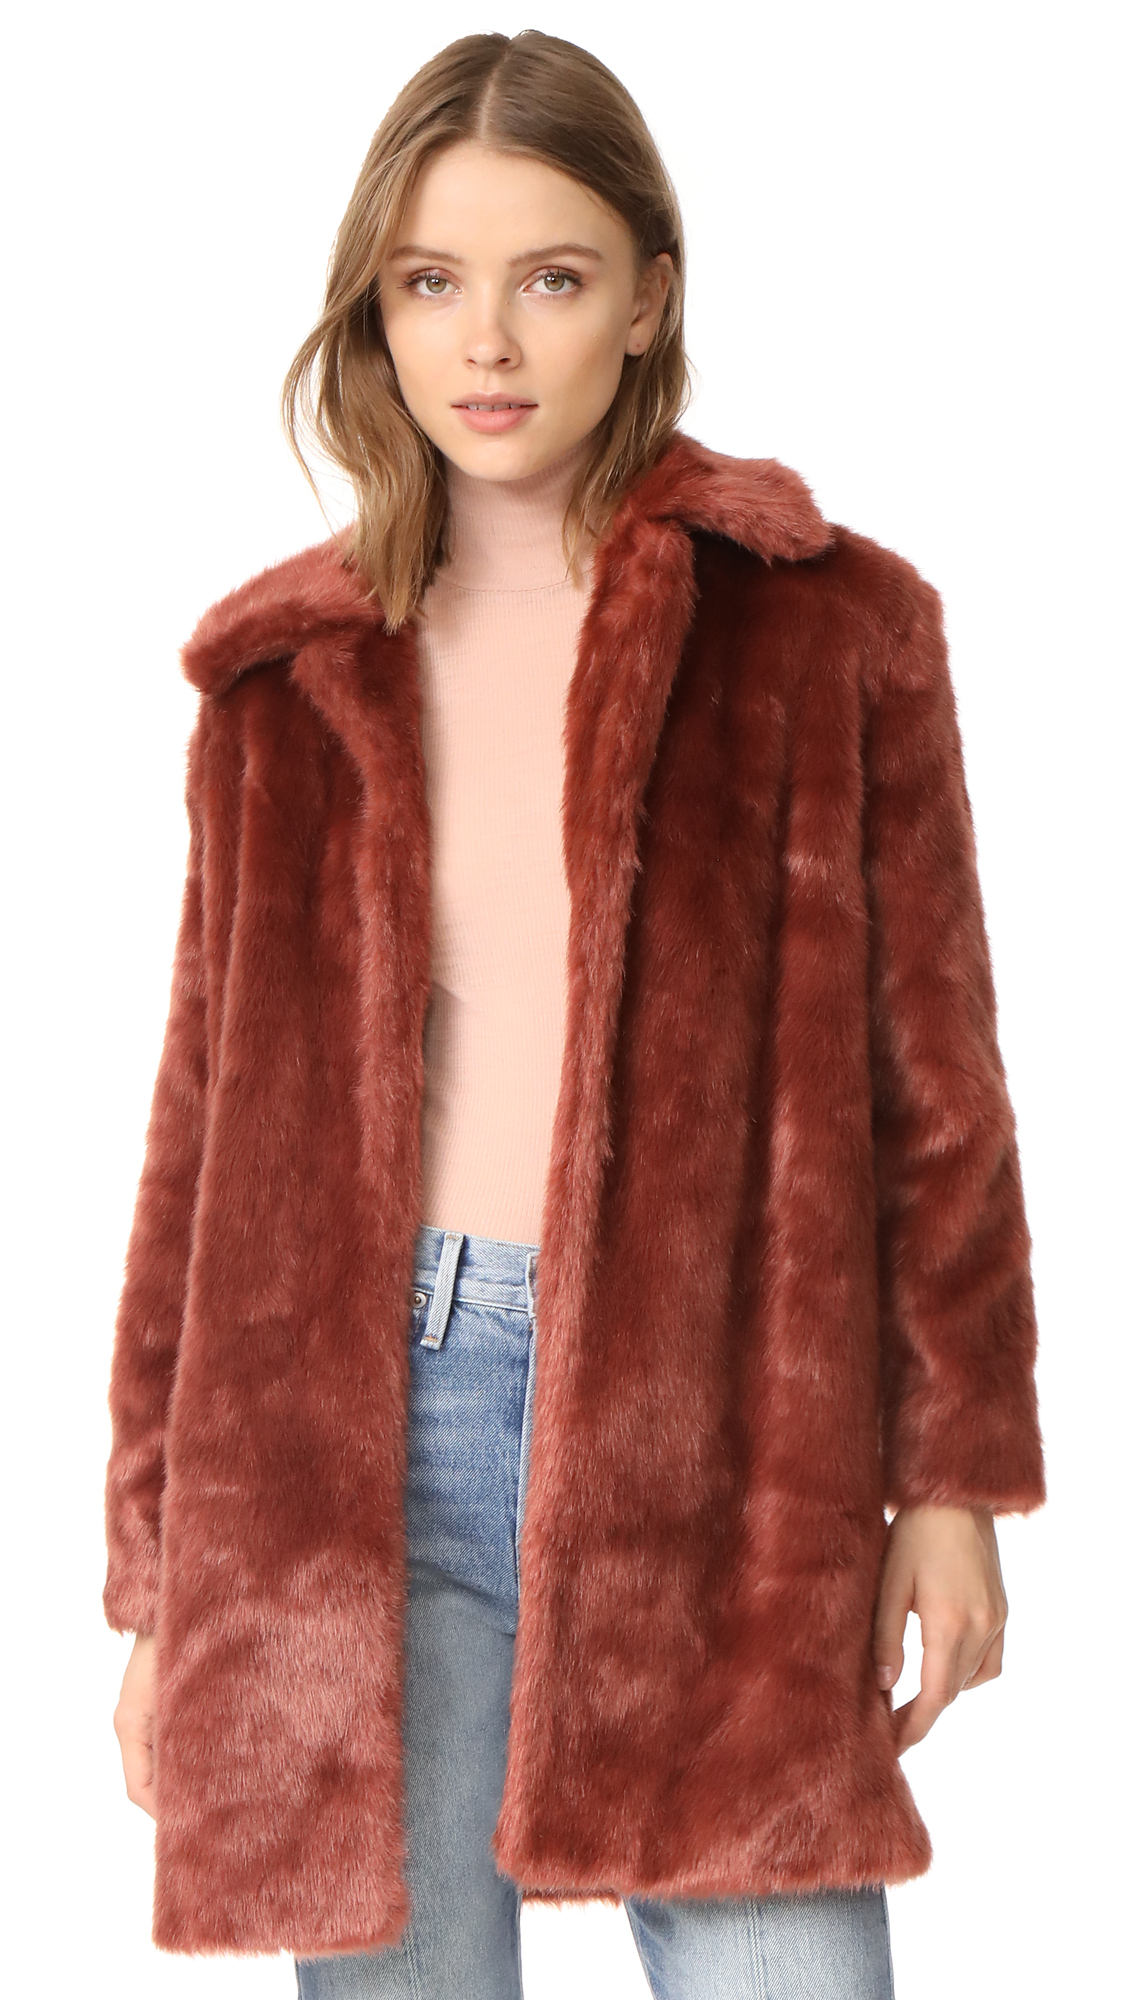 FRAME Faux Fur Coat - Spice